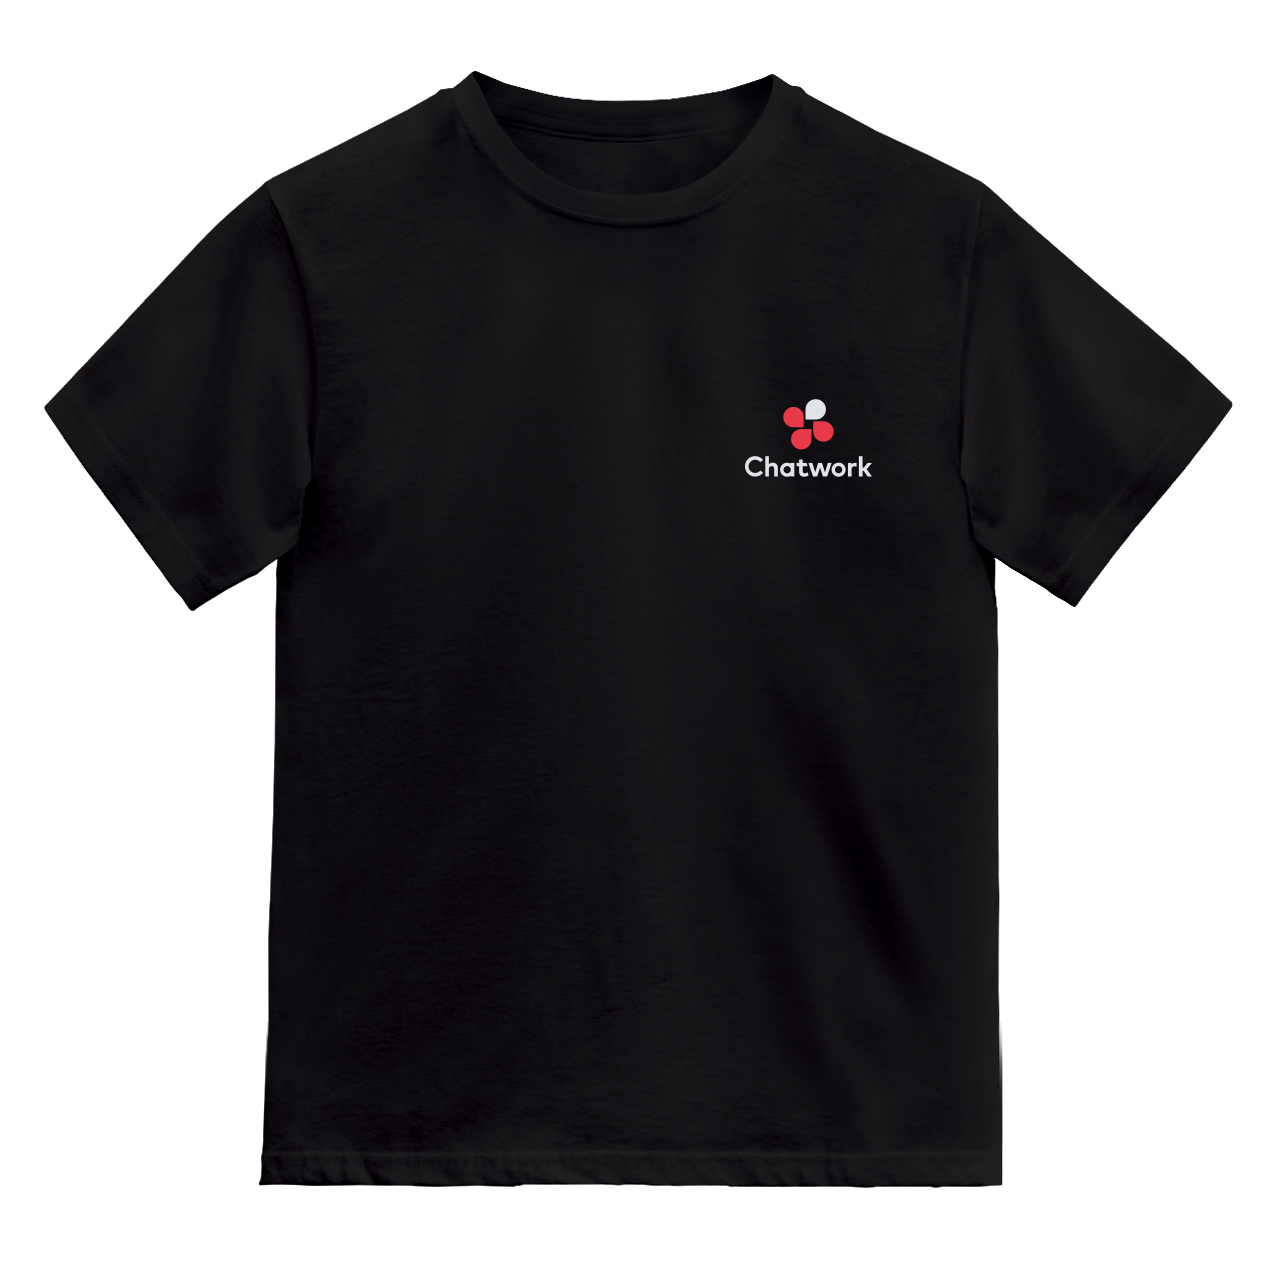 Chatwork LOGO Tシャツ Vt